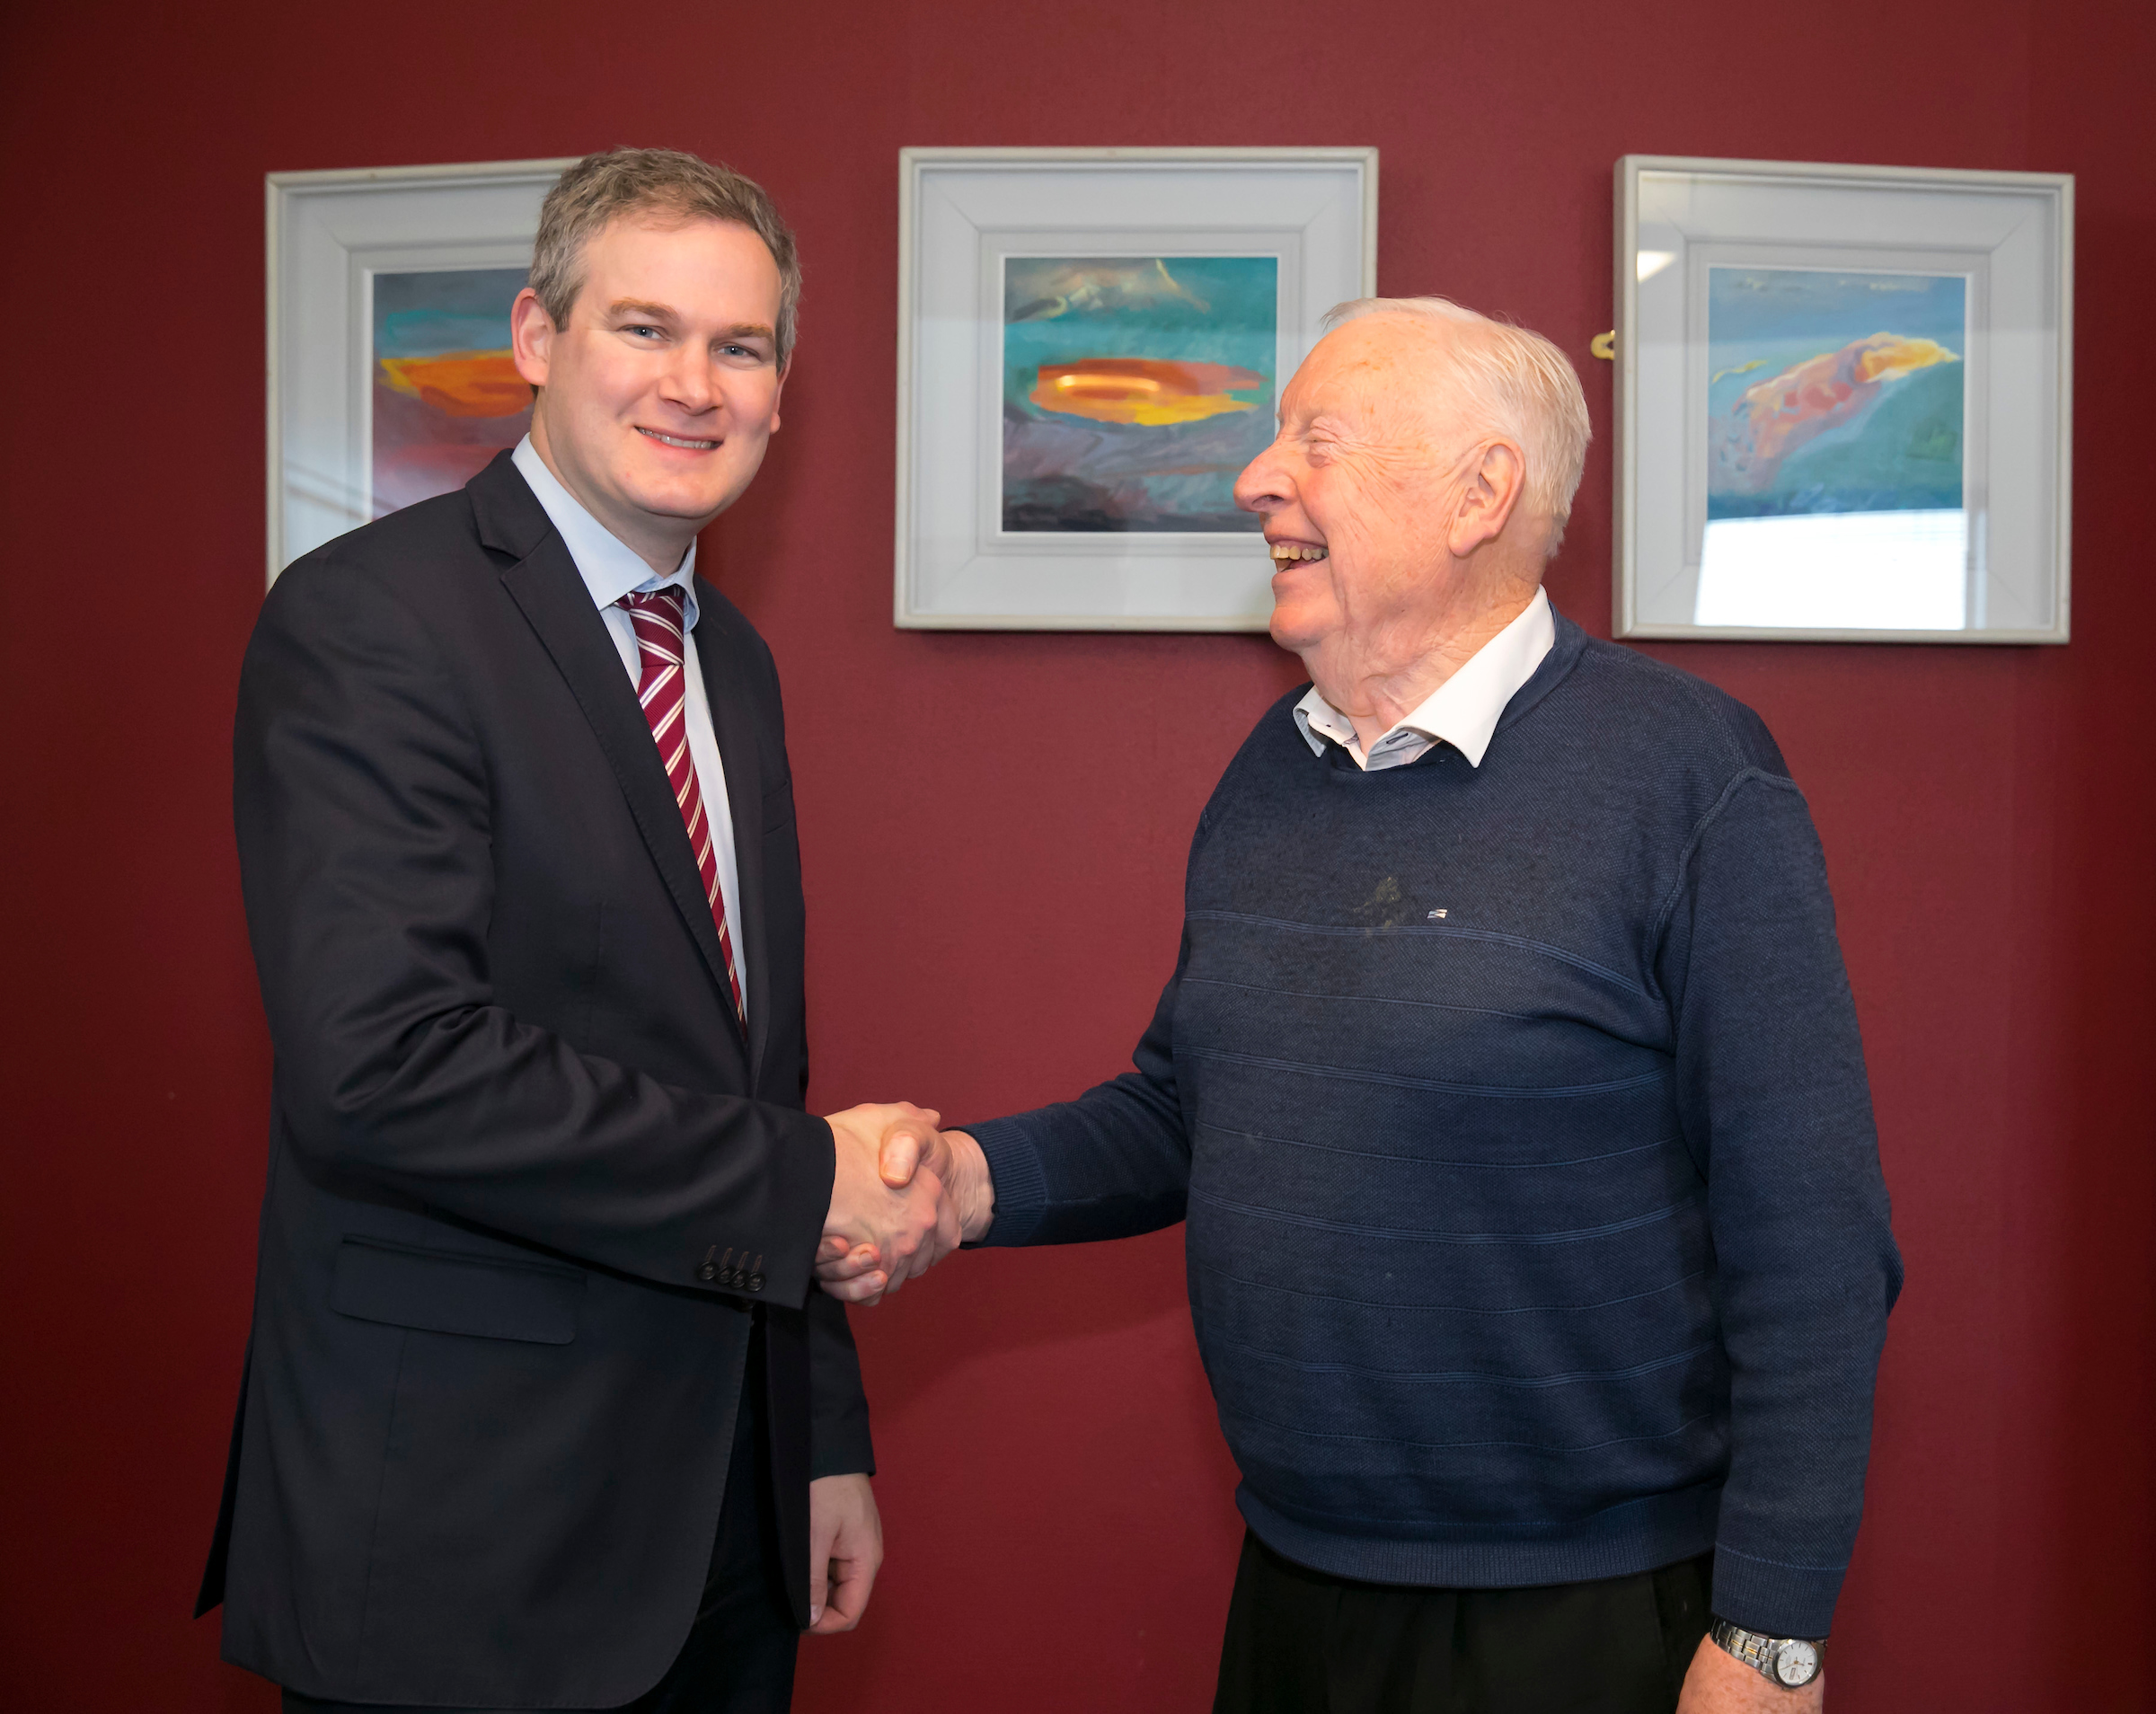 Minister of State Seán Kyne TD (Government Chief Whip and Minister of State for Gaeilge, the Gaeltacht and the Islands), and Mr Tom Boyle (Ireland's oldest third level student).